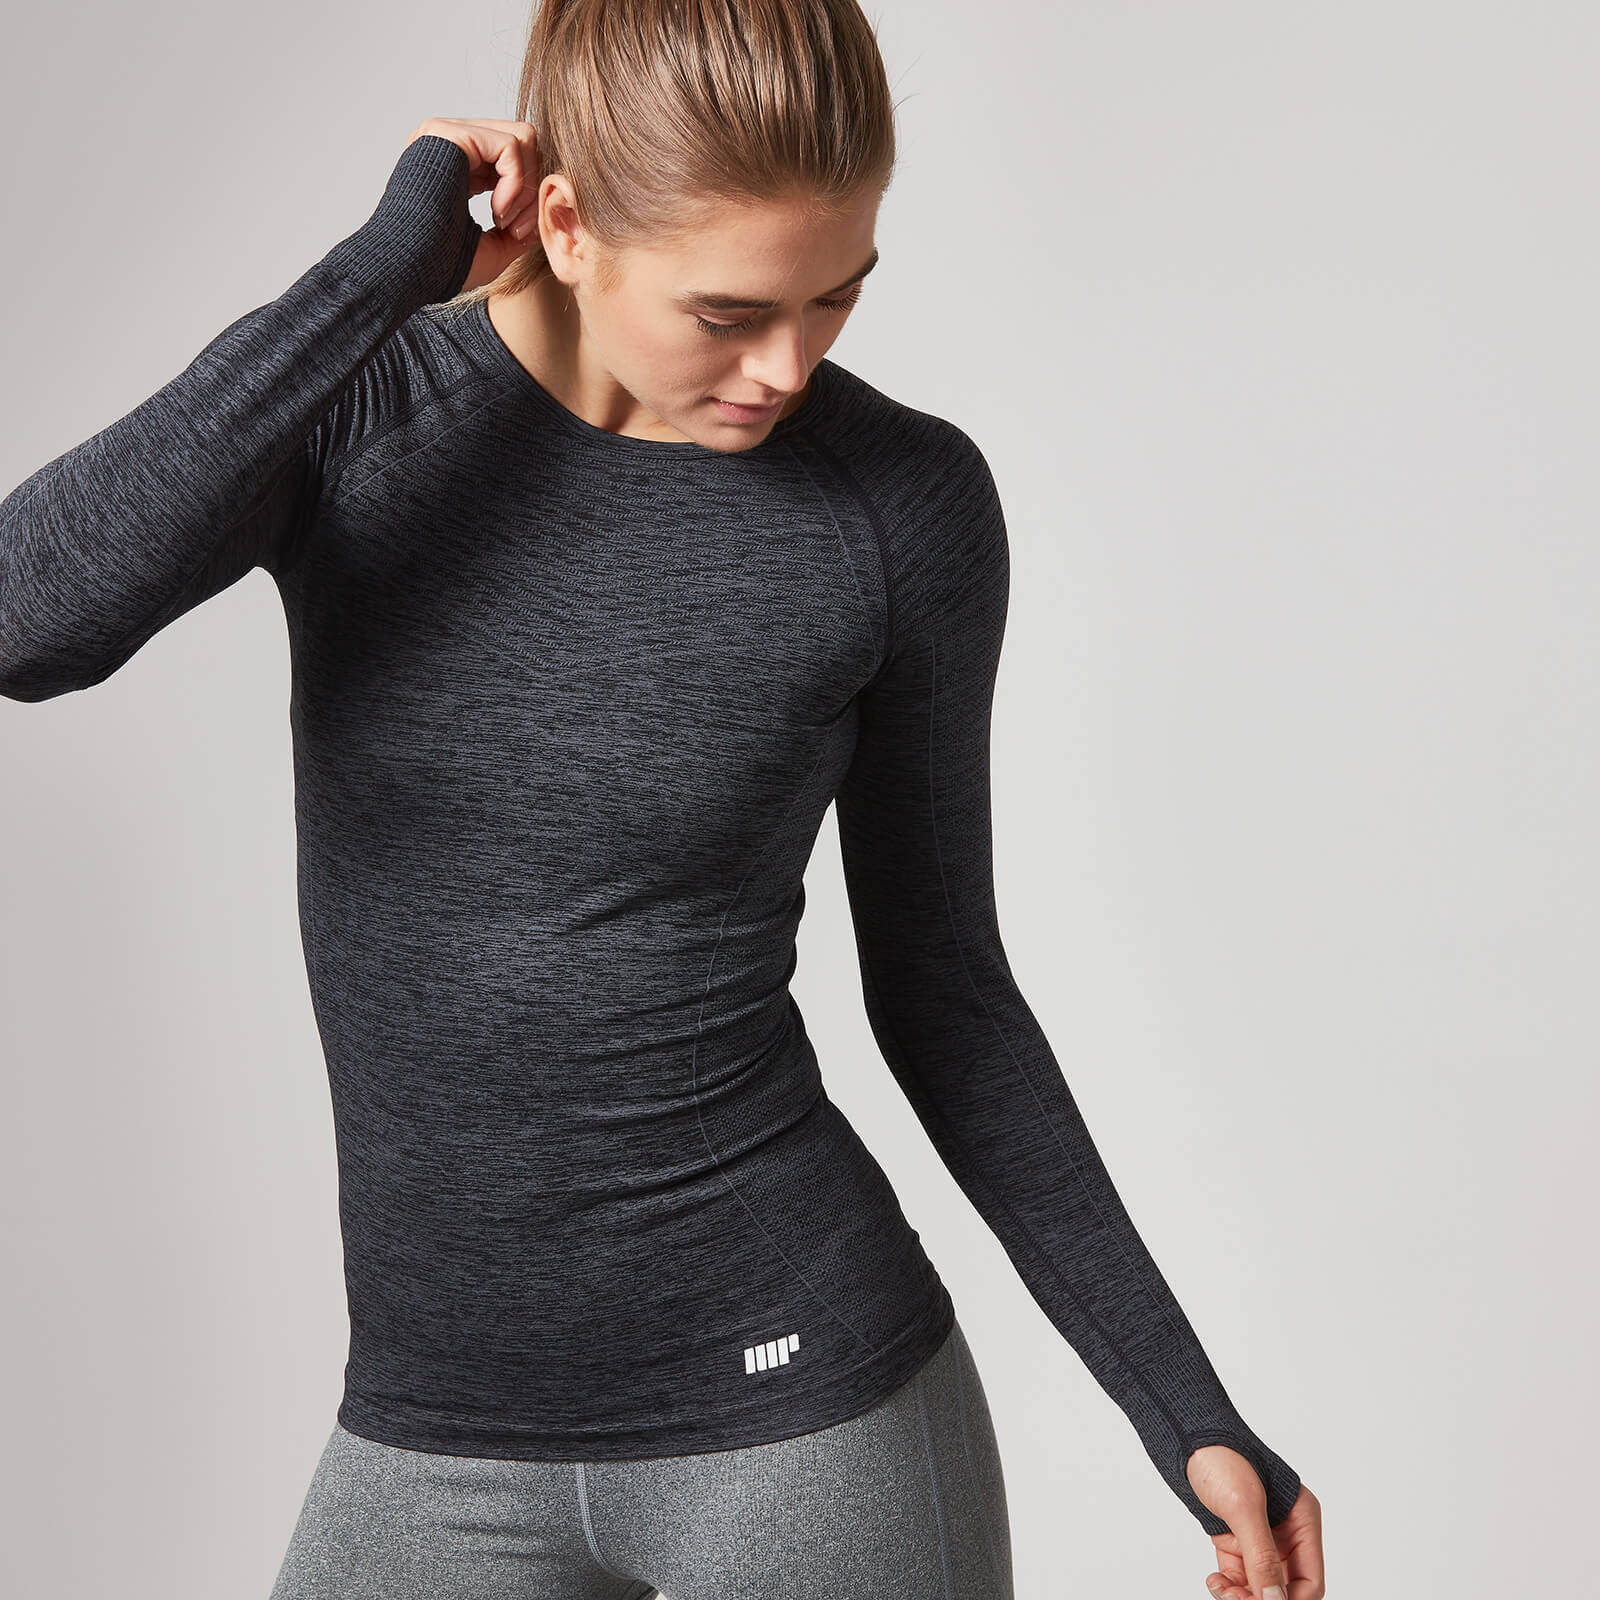 Myprotein Curve Seamless Long Sleeve T-Shirt